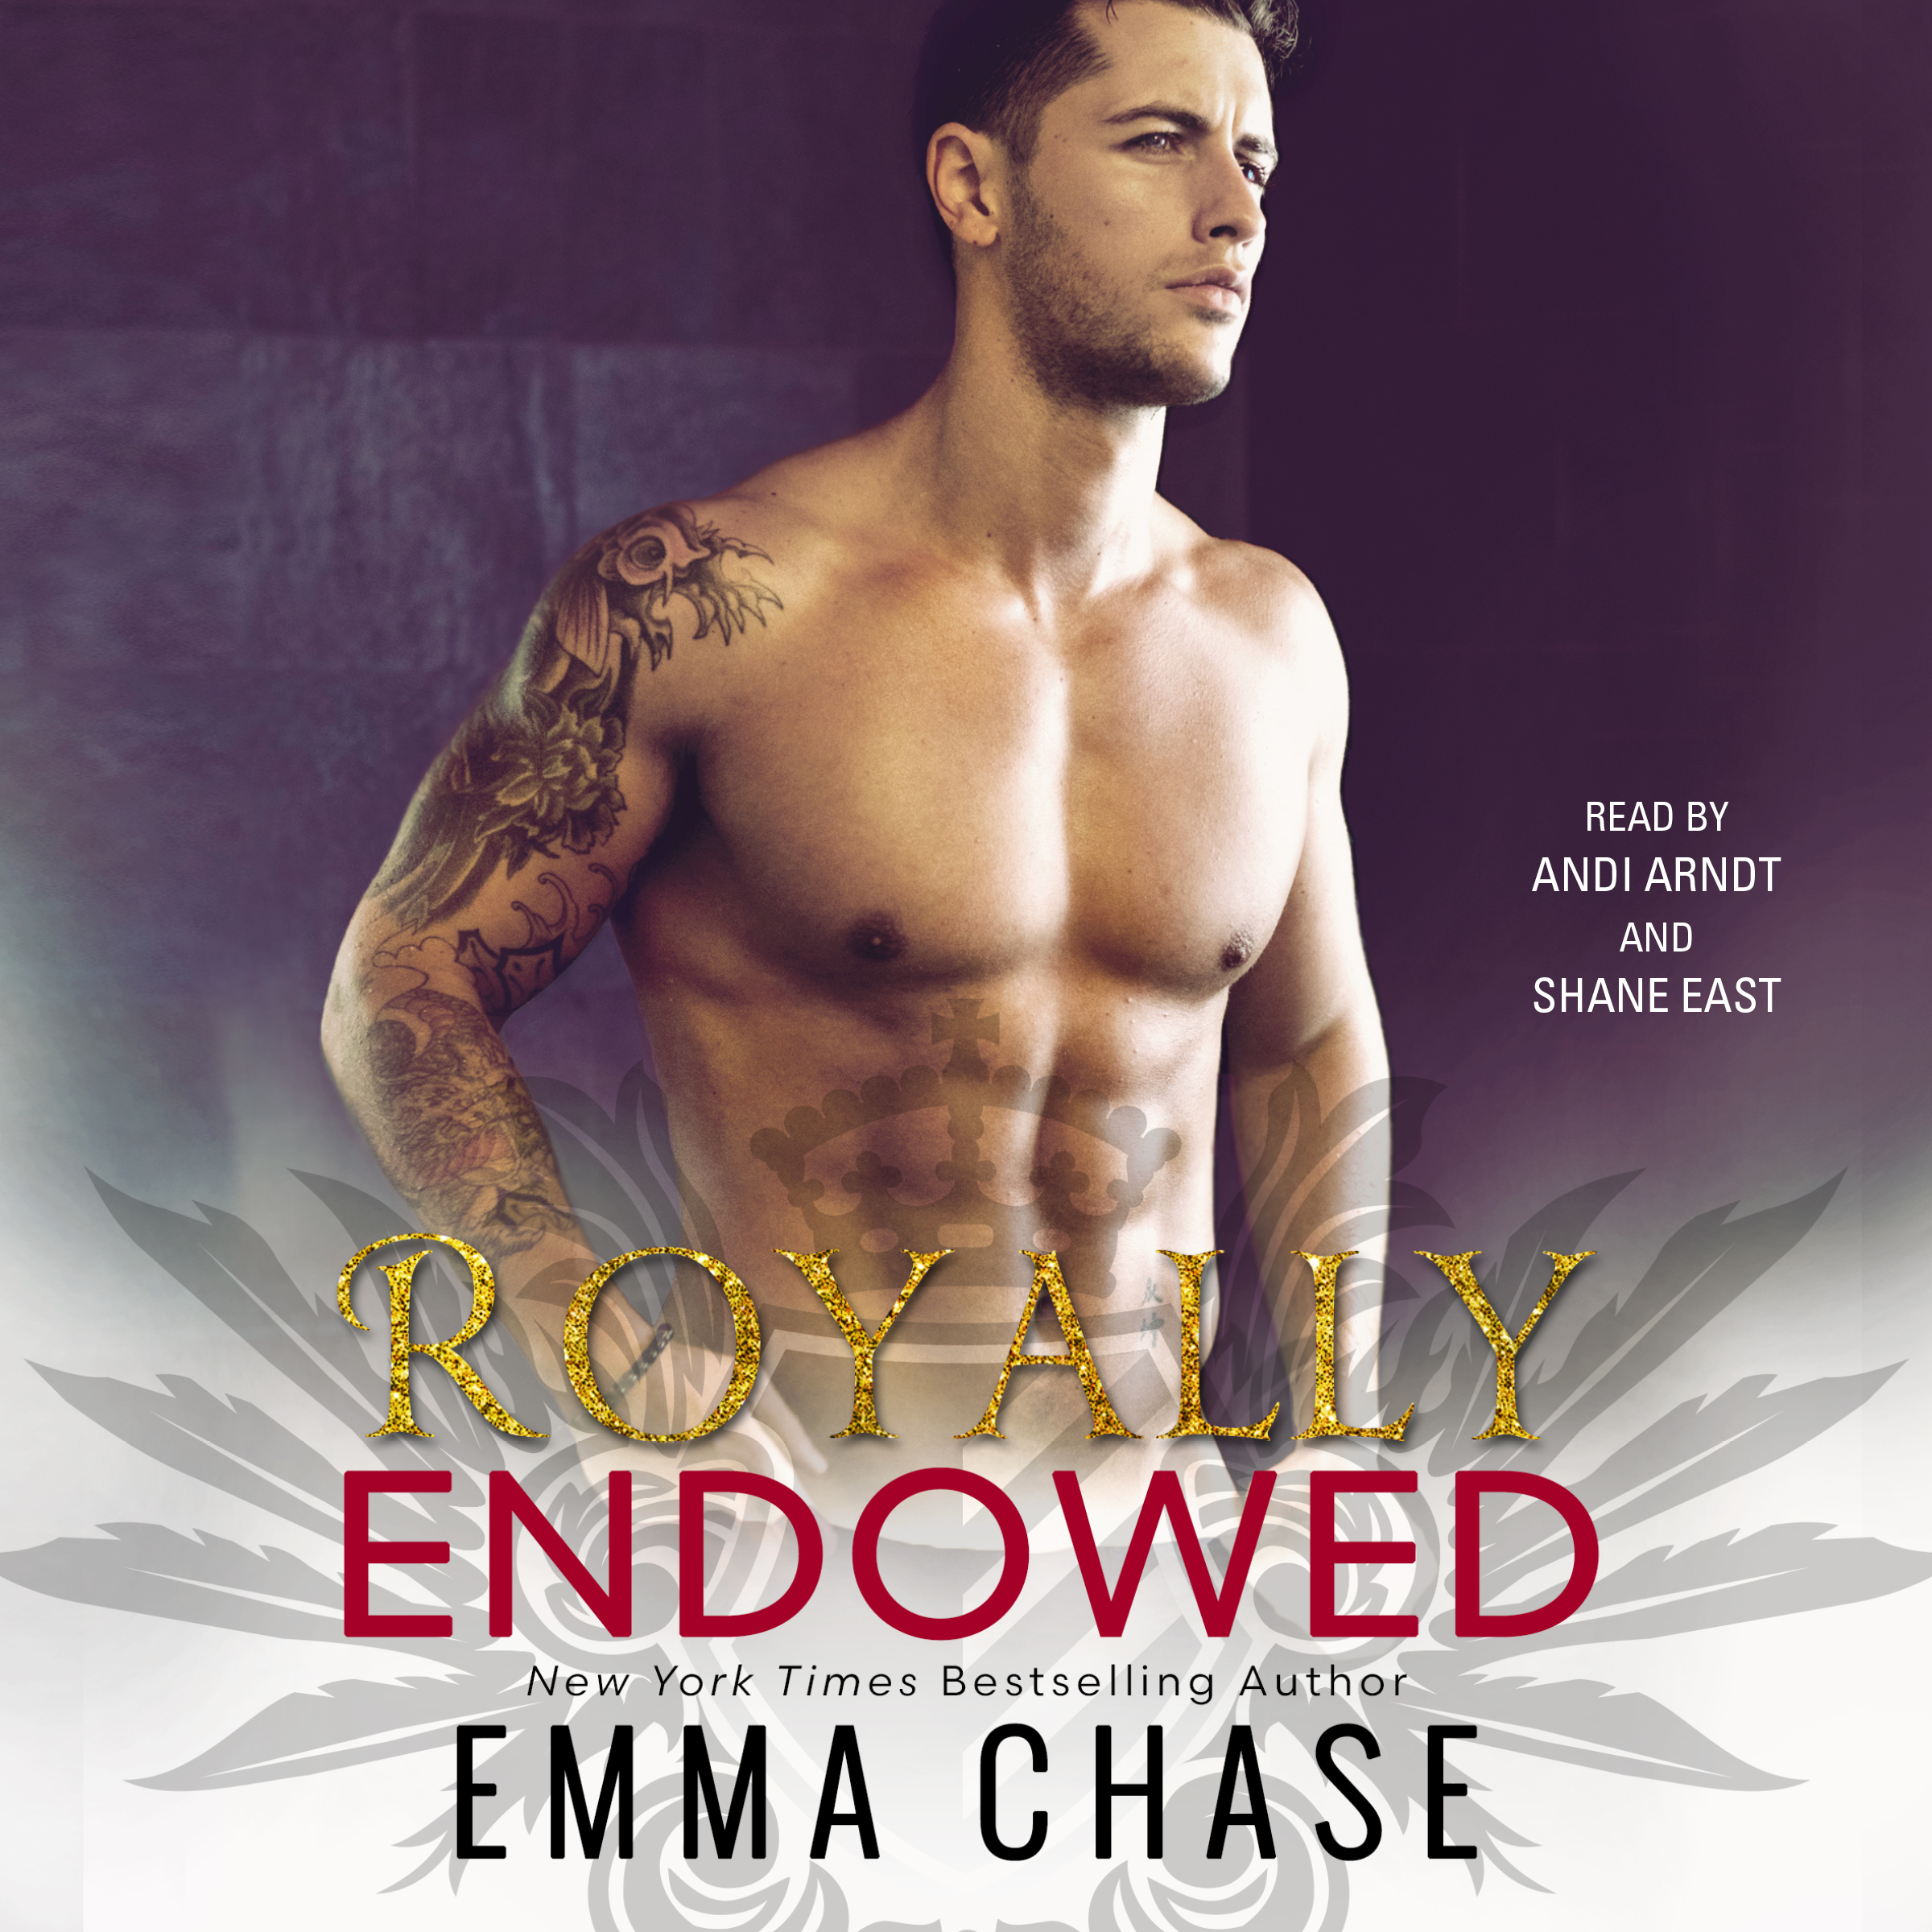 Royally Endowed Royally Endowed Royally Endowed By Emma Chase